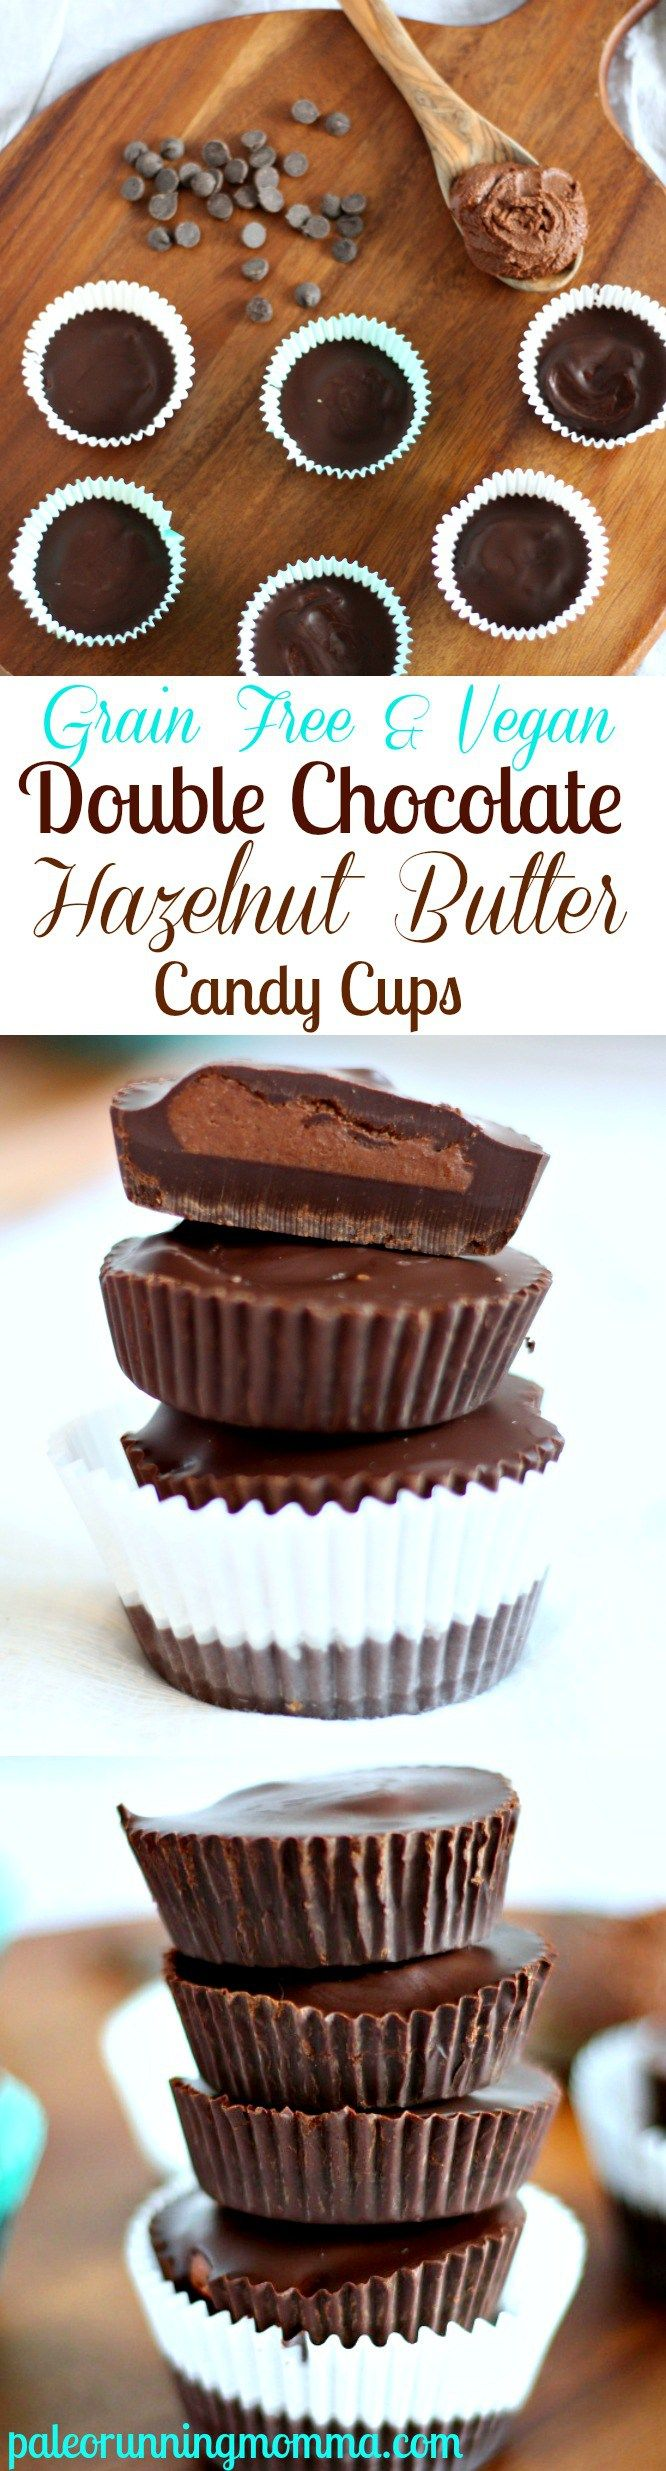 Rich and Creamy but healthy and quick dessert - Double Chocolate Hazelnut Butter Cups - Vegan and grain free with a  paleo option!